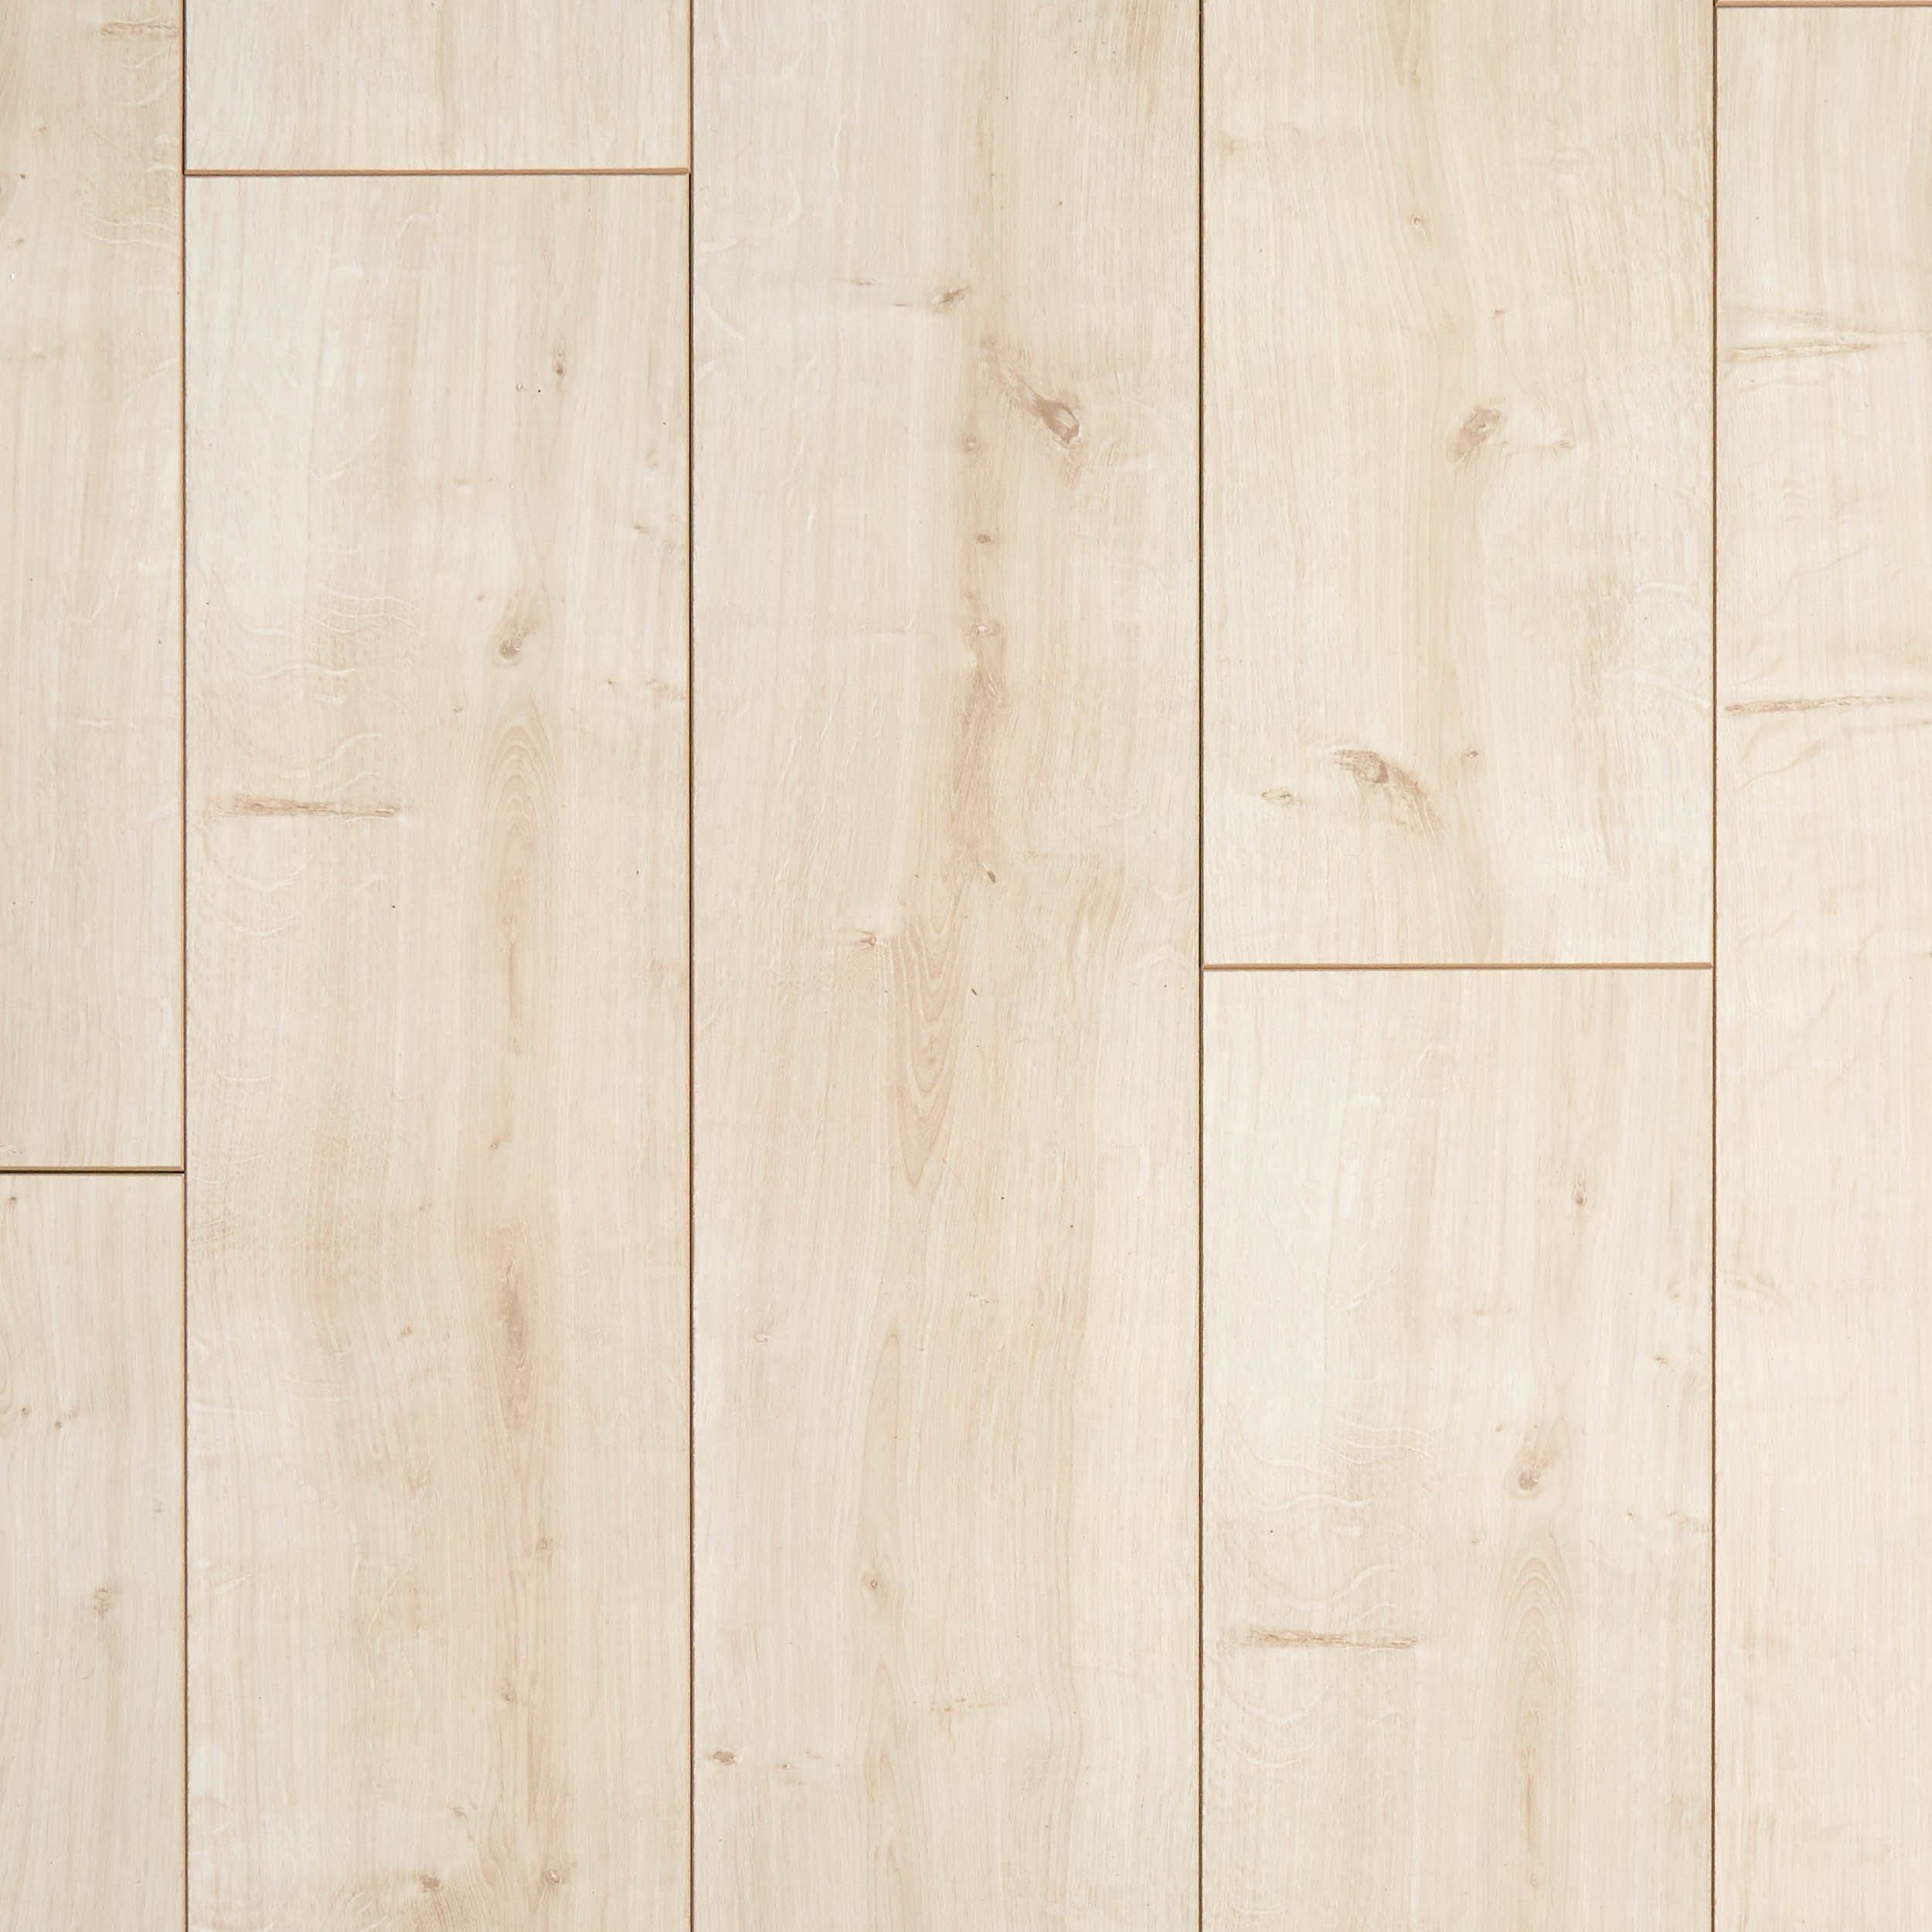 Camarillo Natural Oak Water Resistant Laminate Flooring Waterproof Laminate Flooring Natural Wood Flooring